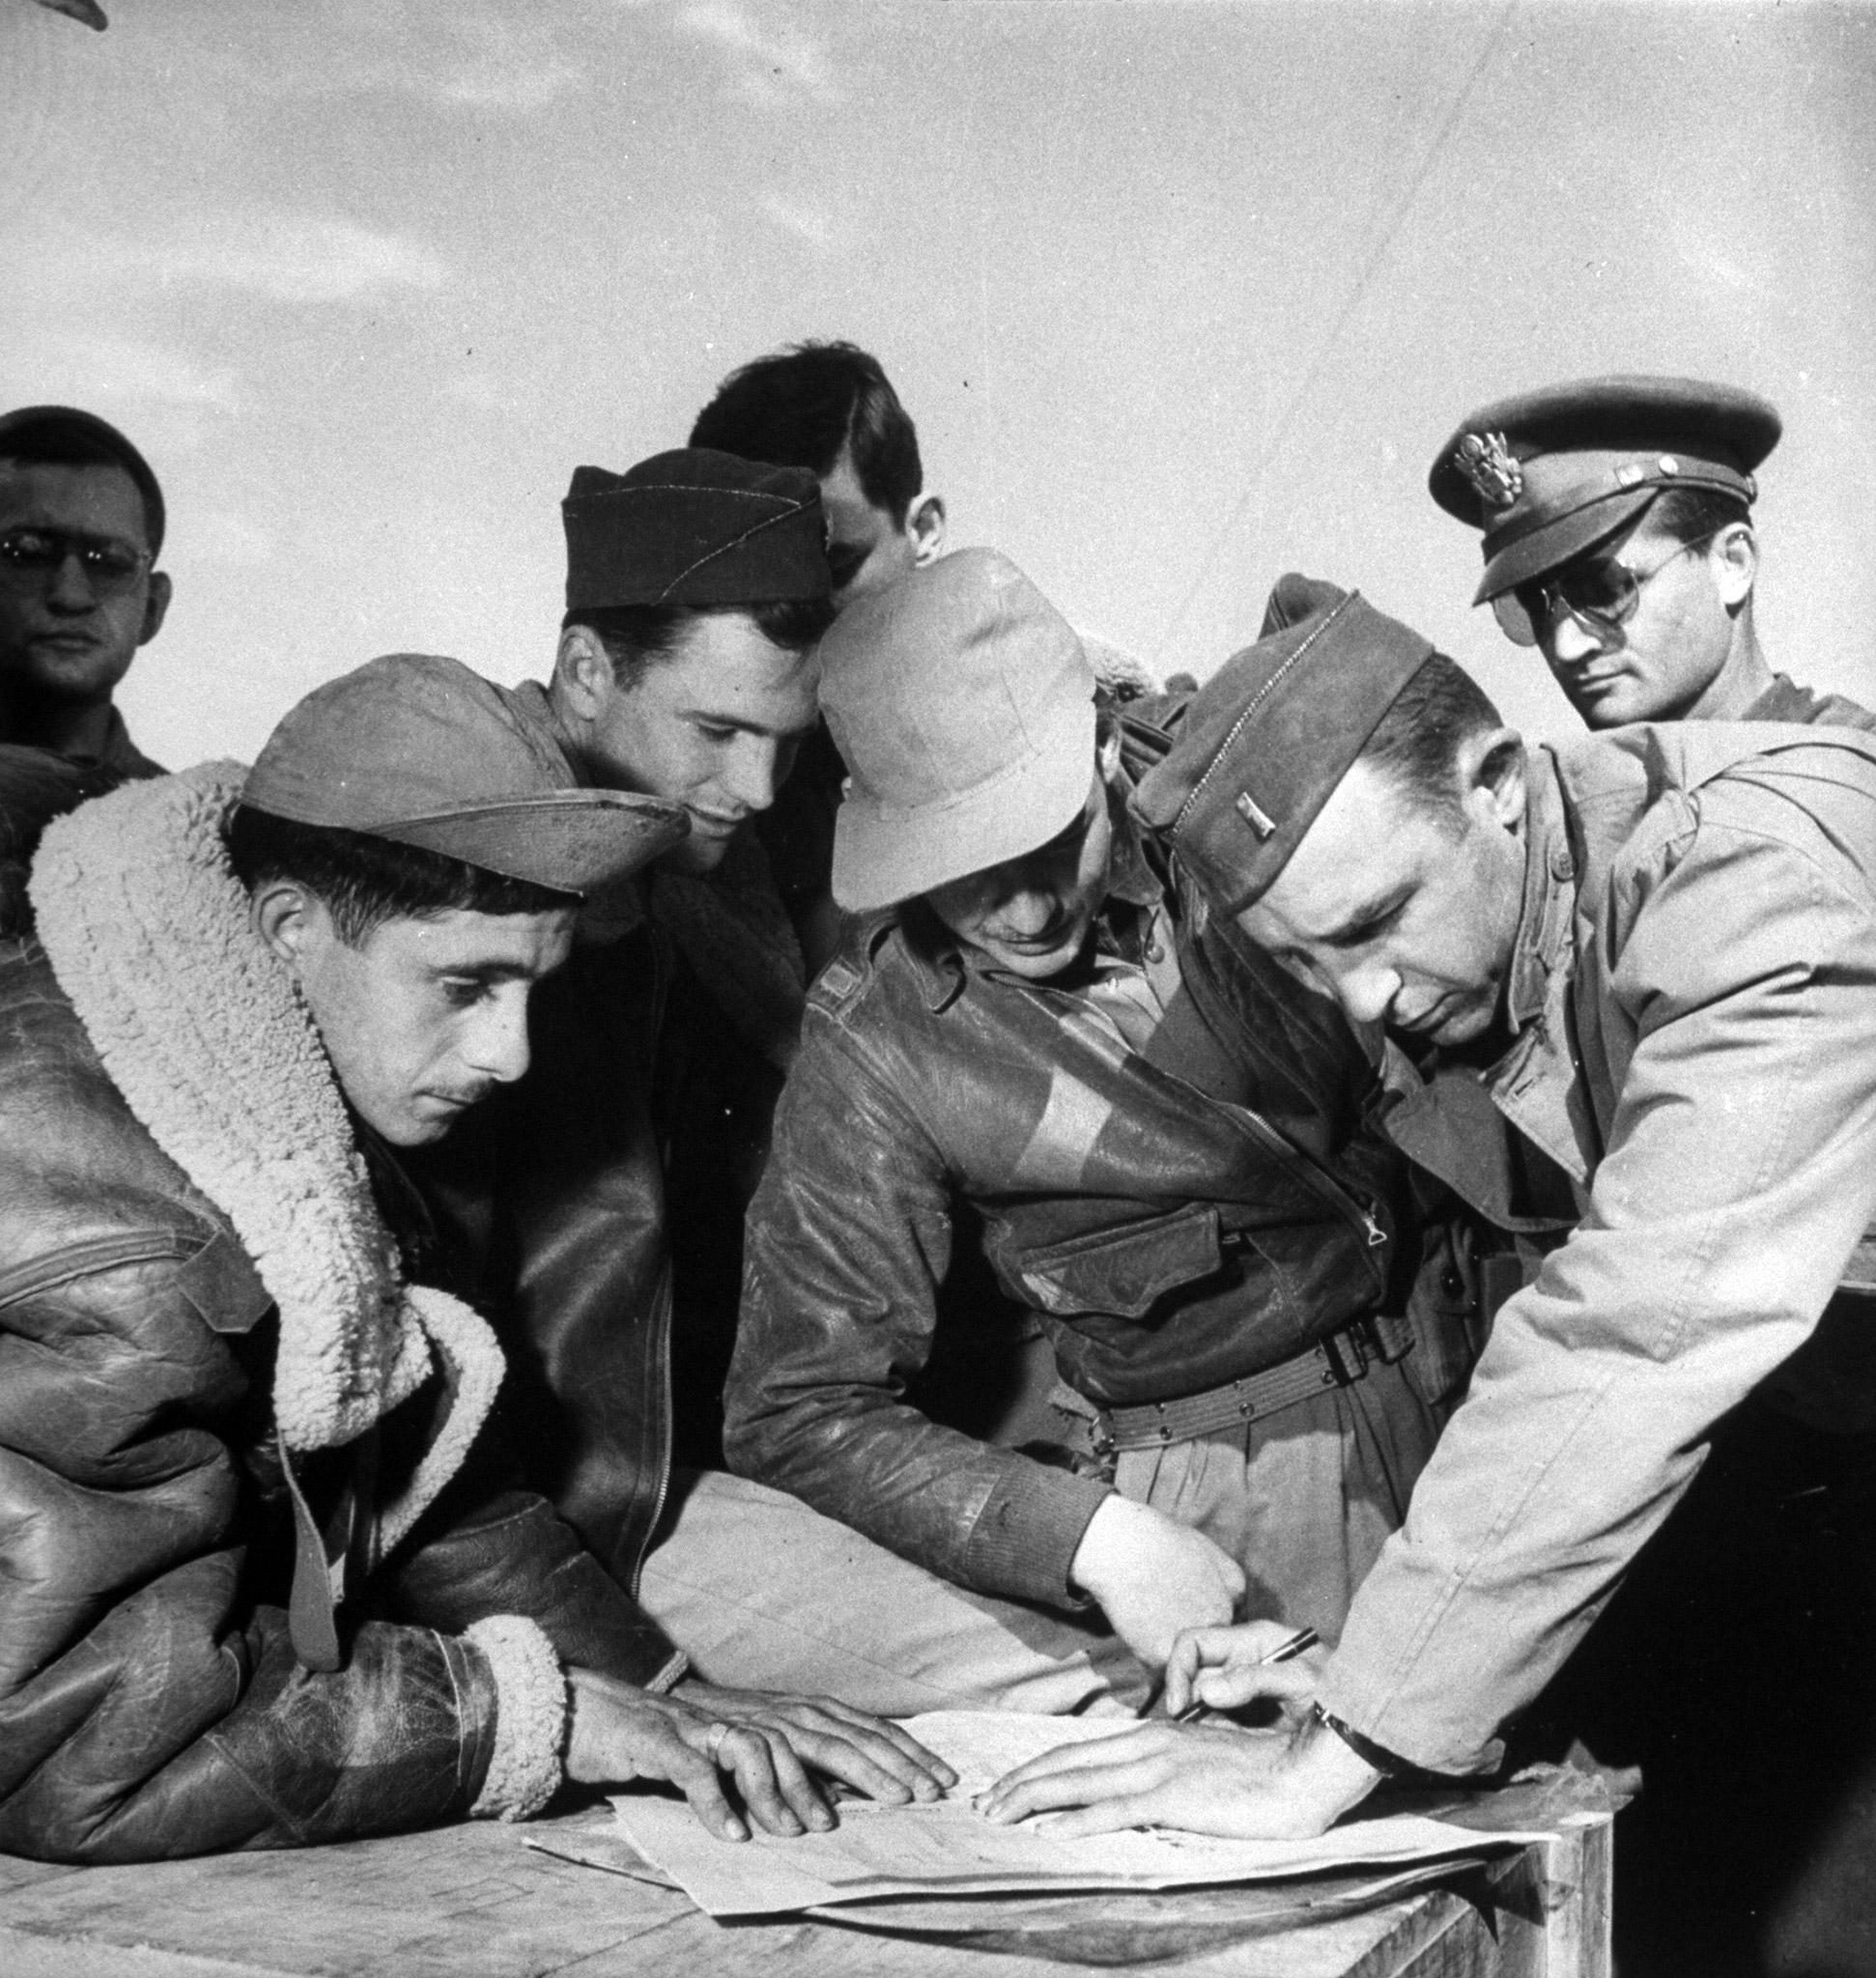 B17 bomber crew sharing bombing raid details of target in Tunis in North Africa with intelligence officers, during WWII.